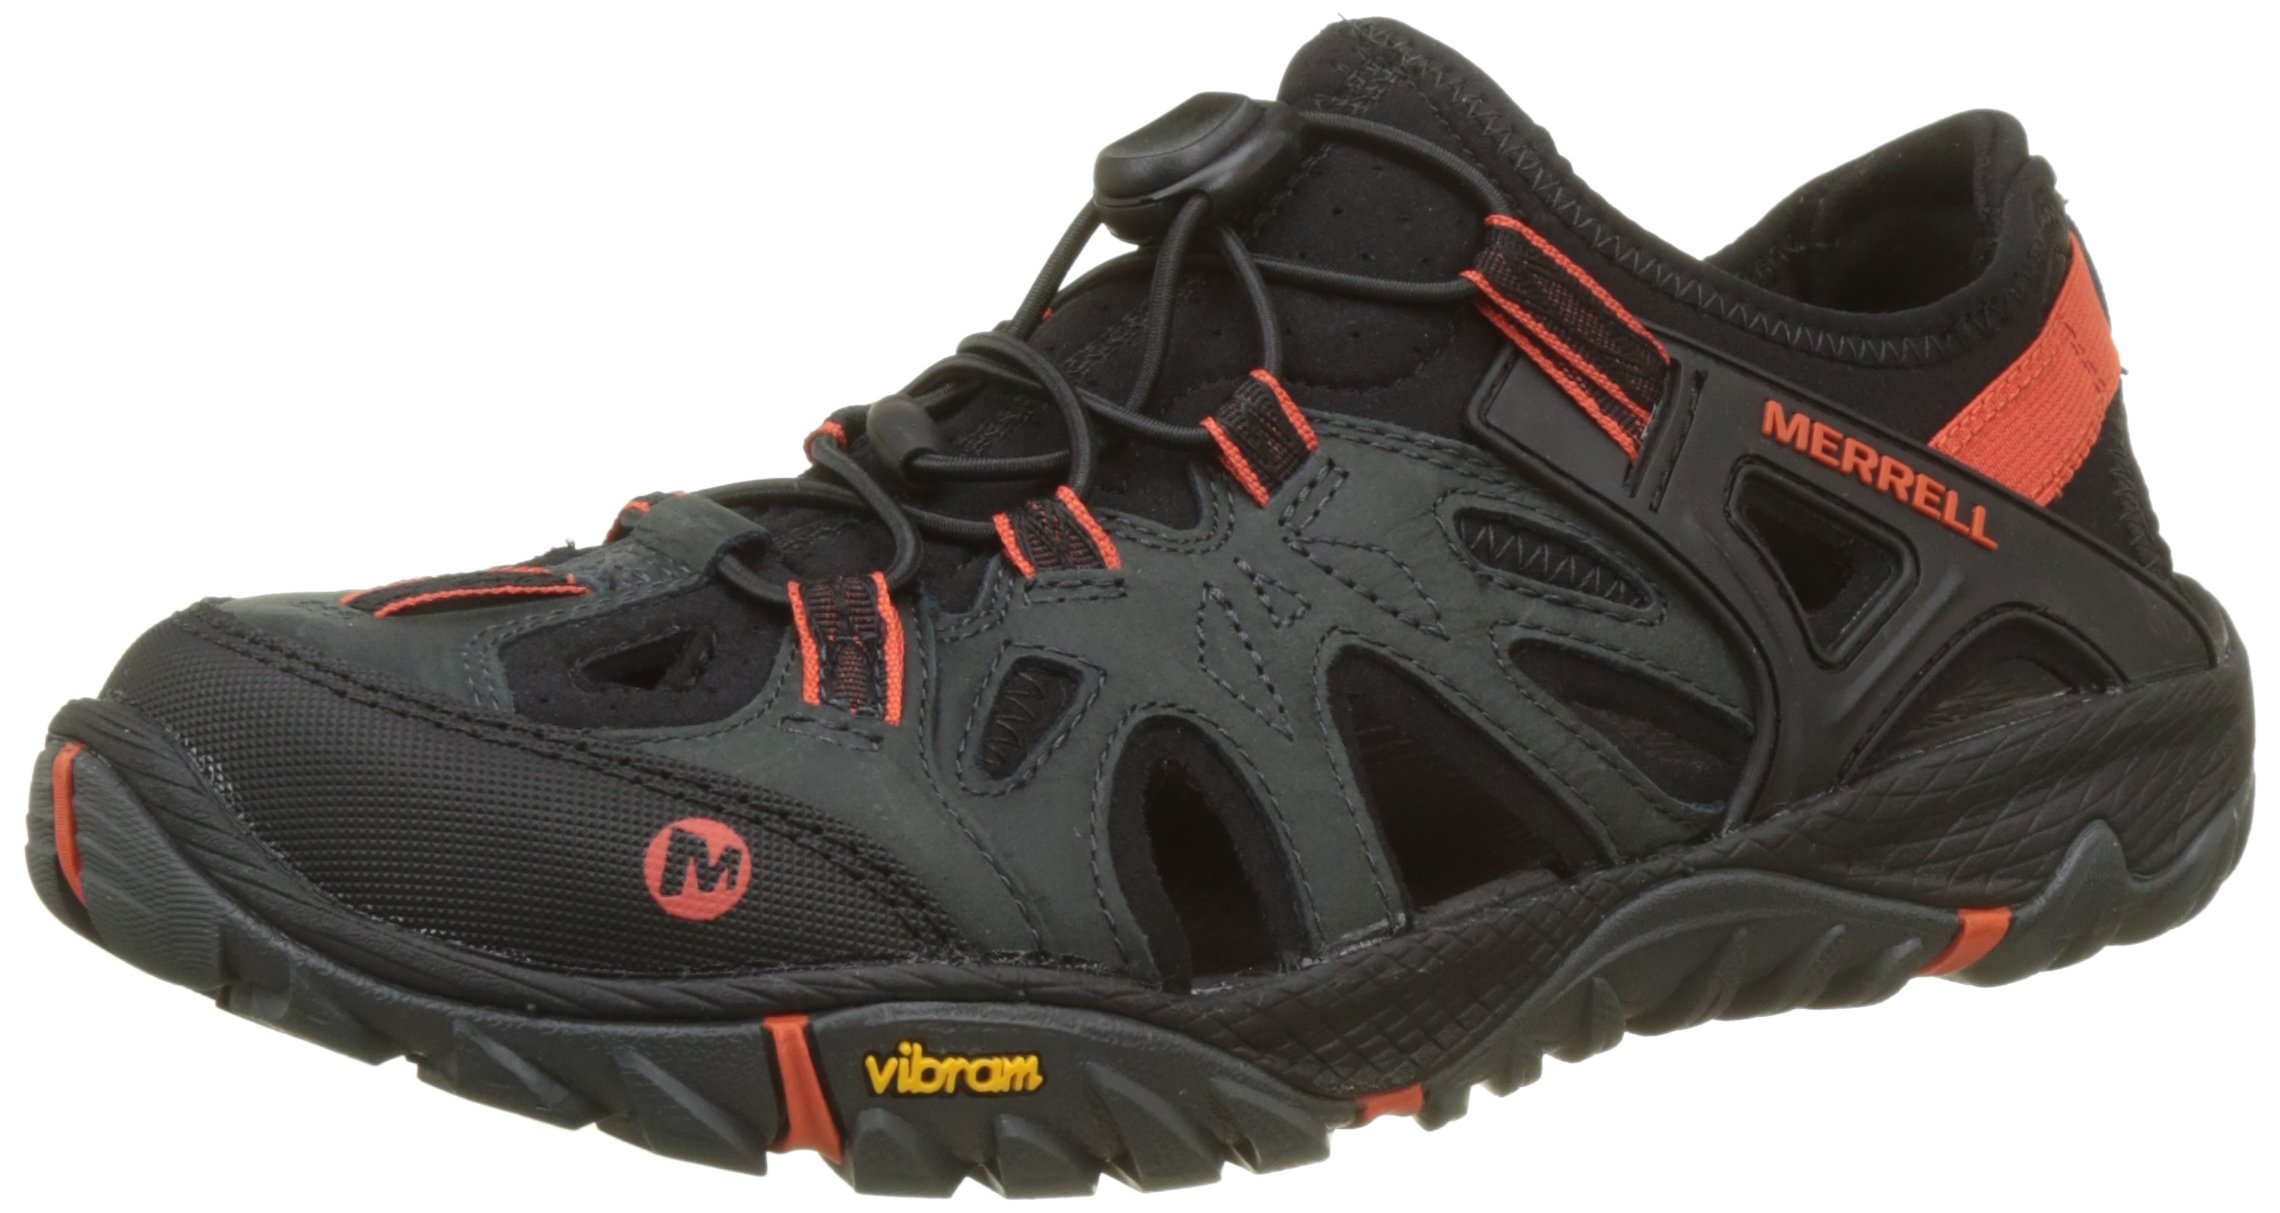 Merrell Men's All Out Blaze Sieve Water Shoes, Grey (Dark Slate Dark Slate), 12.5 48 EU